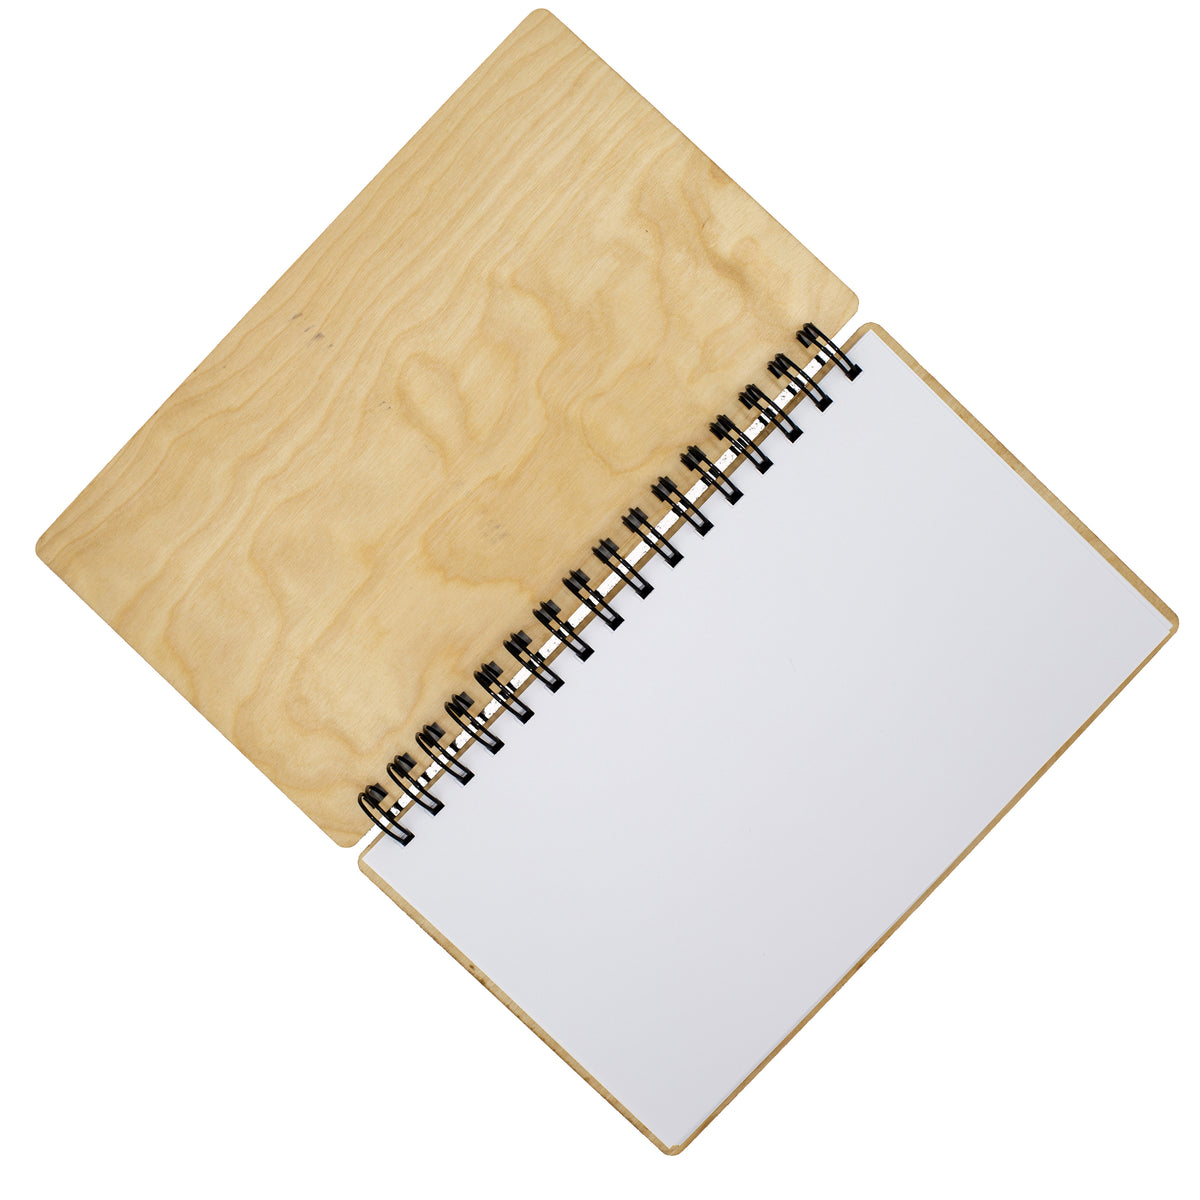 "Rolex Submariner Big Crown Birch Notebook - 6"" x 9"" - Lugcraft Inc"